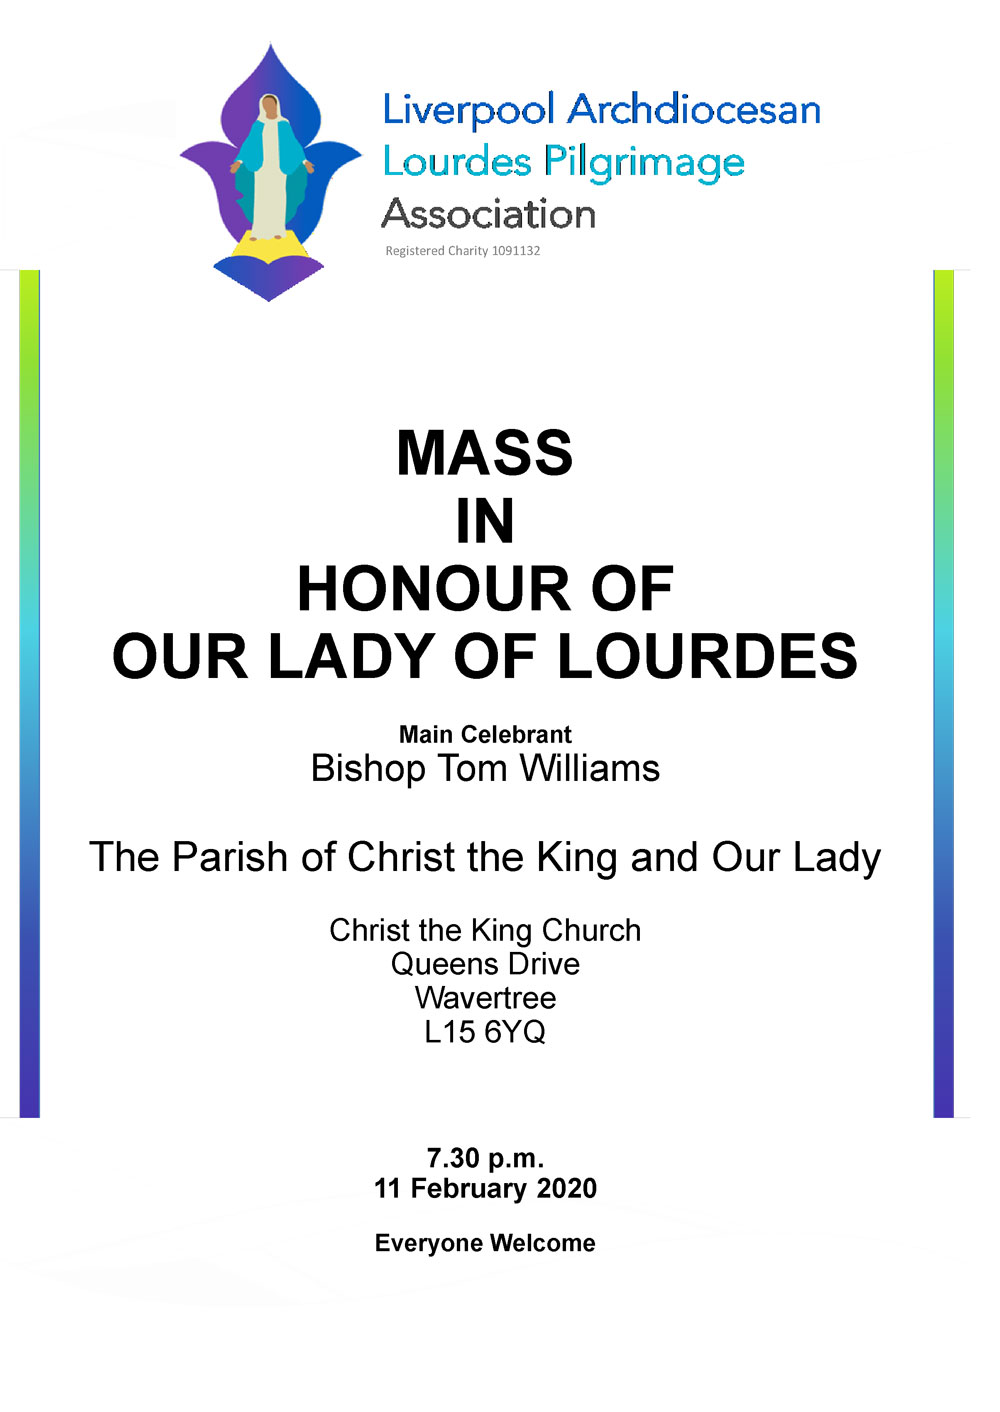 Mass in Honour of Our Lady of Lourdes